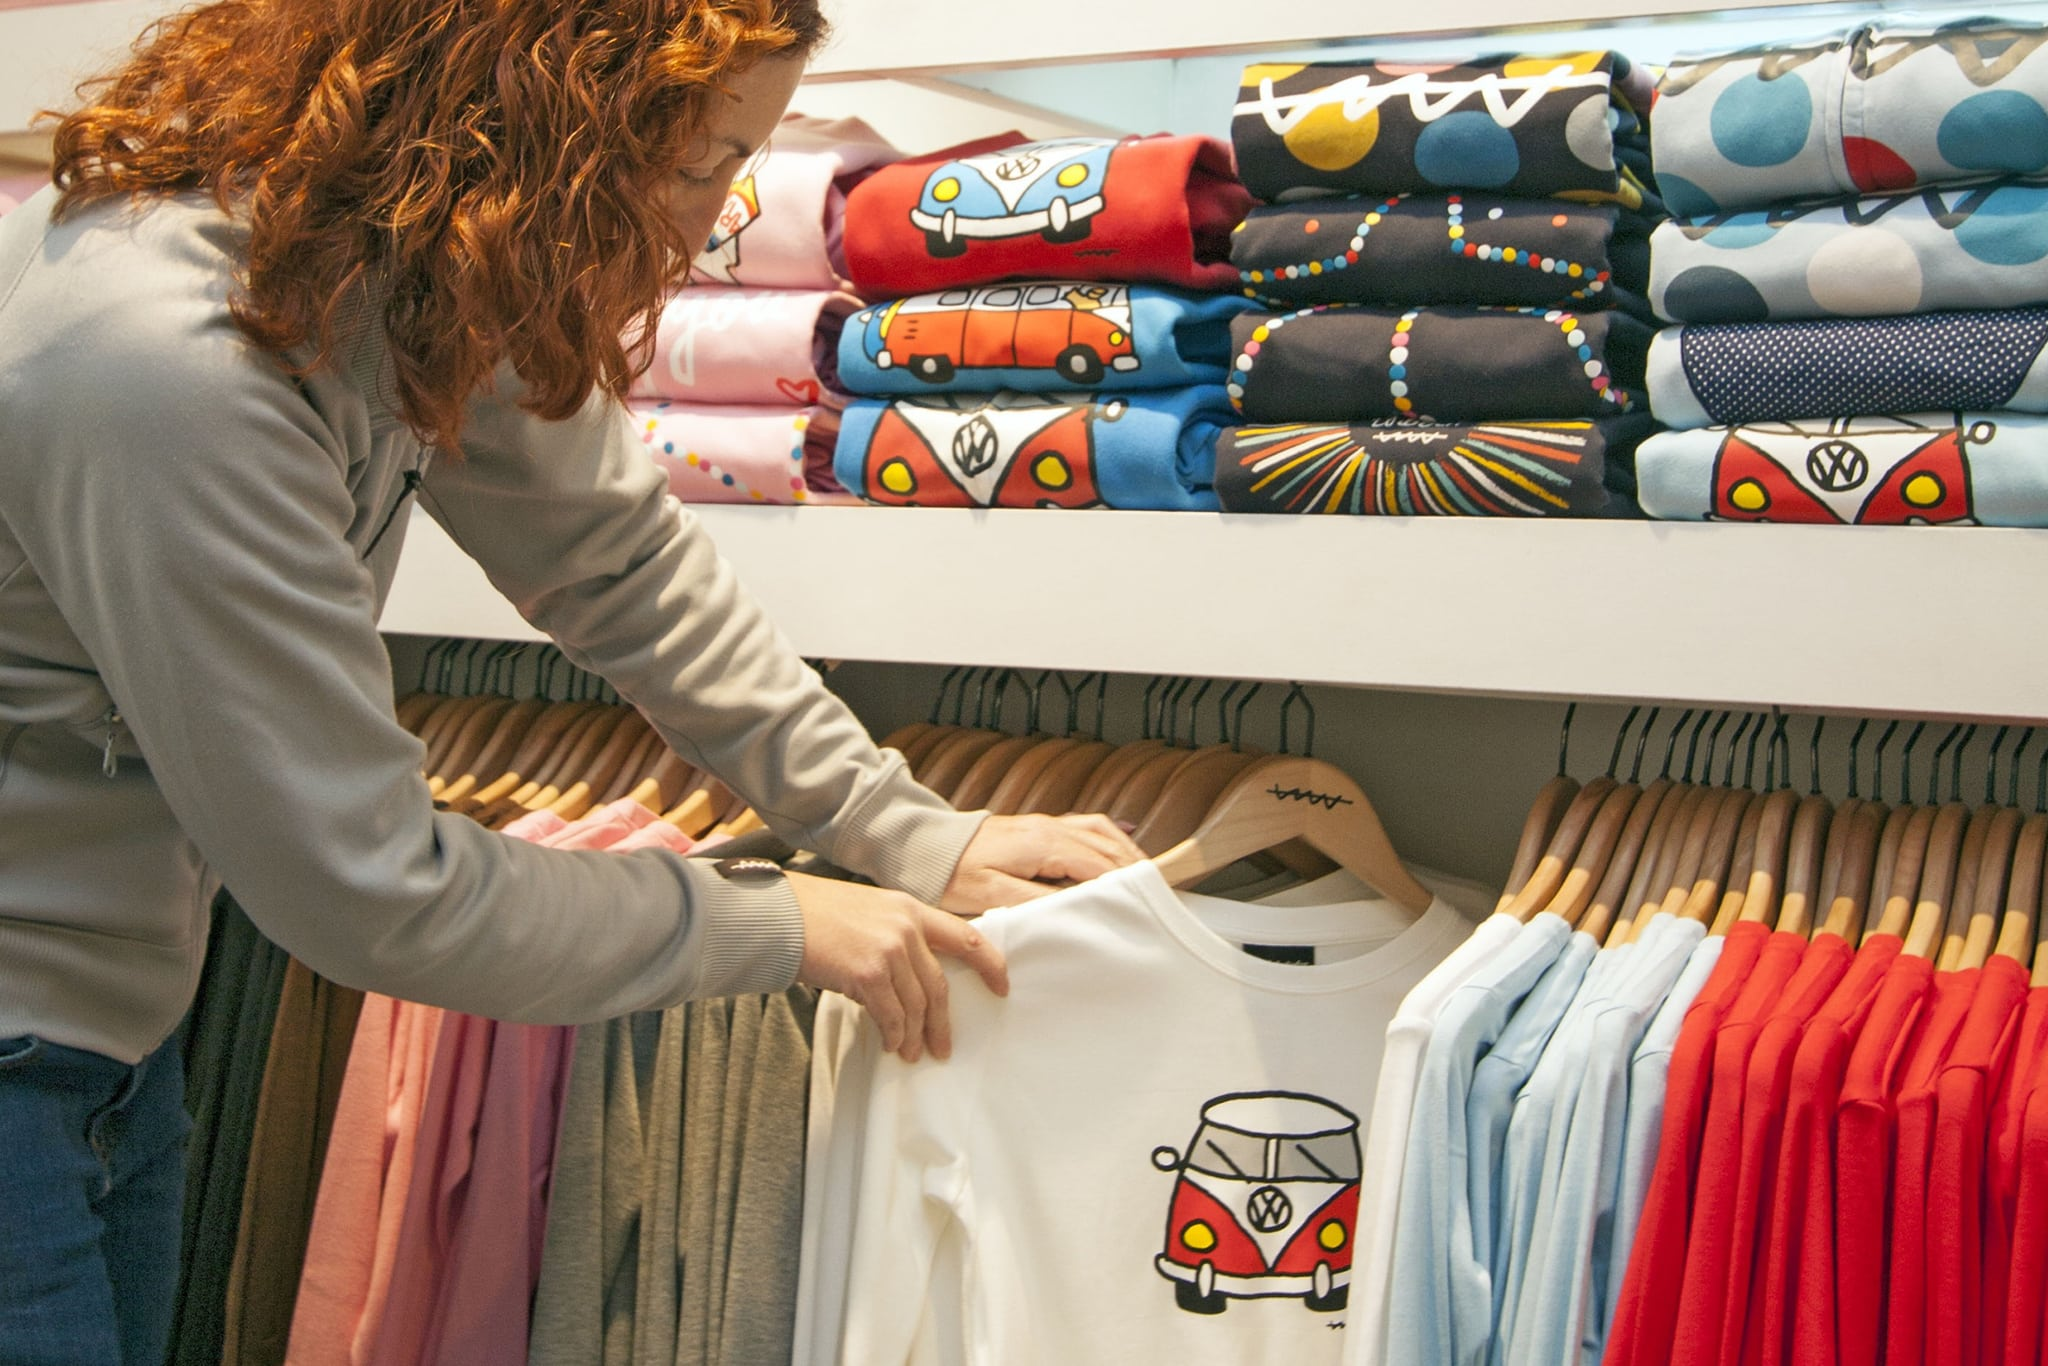 woman with ginger hair looking at a jumper with a red camper van on